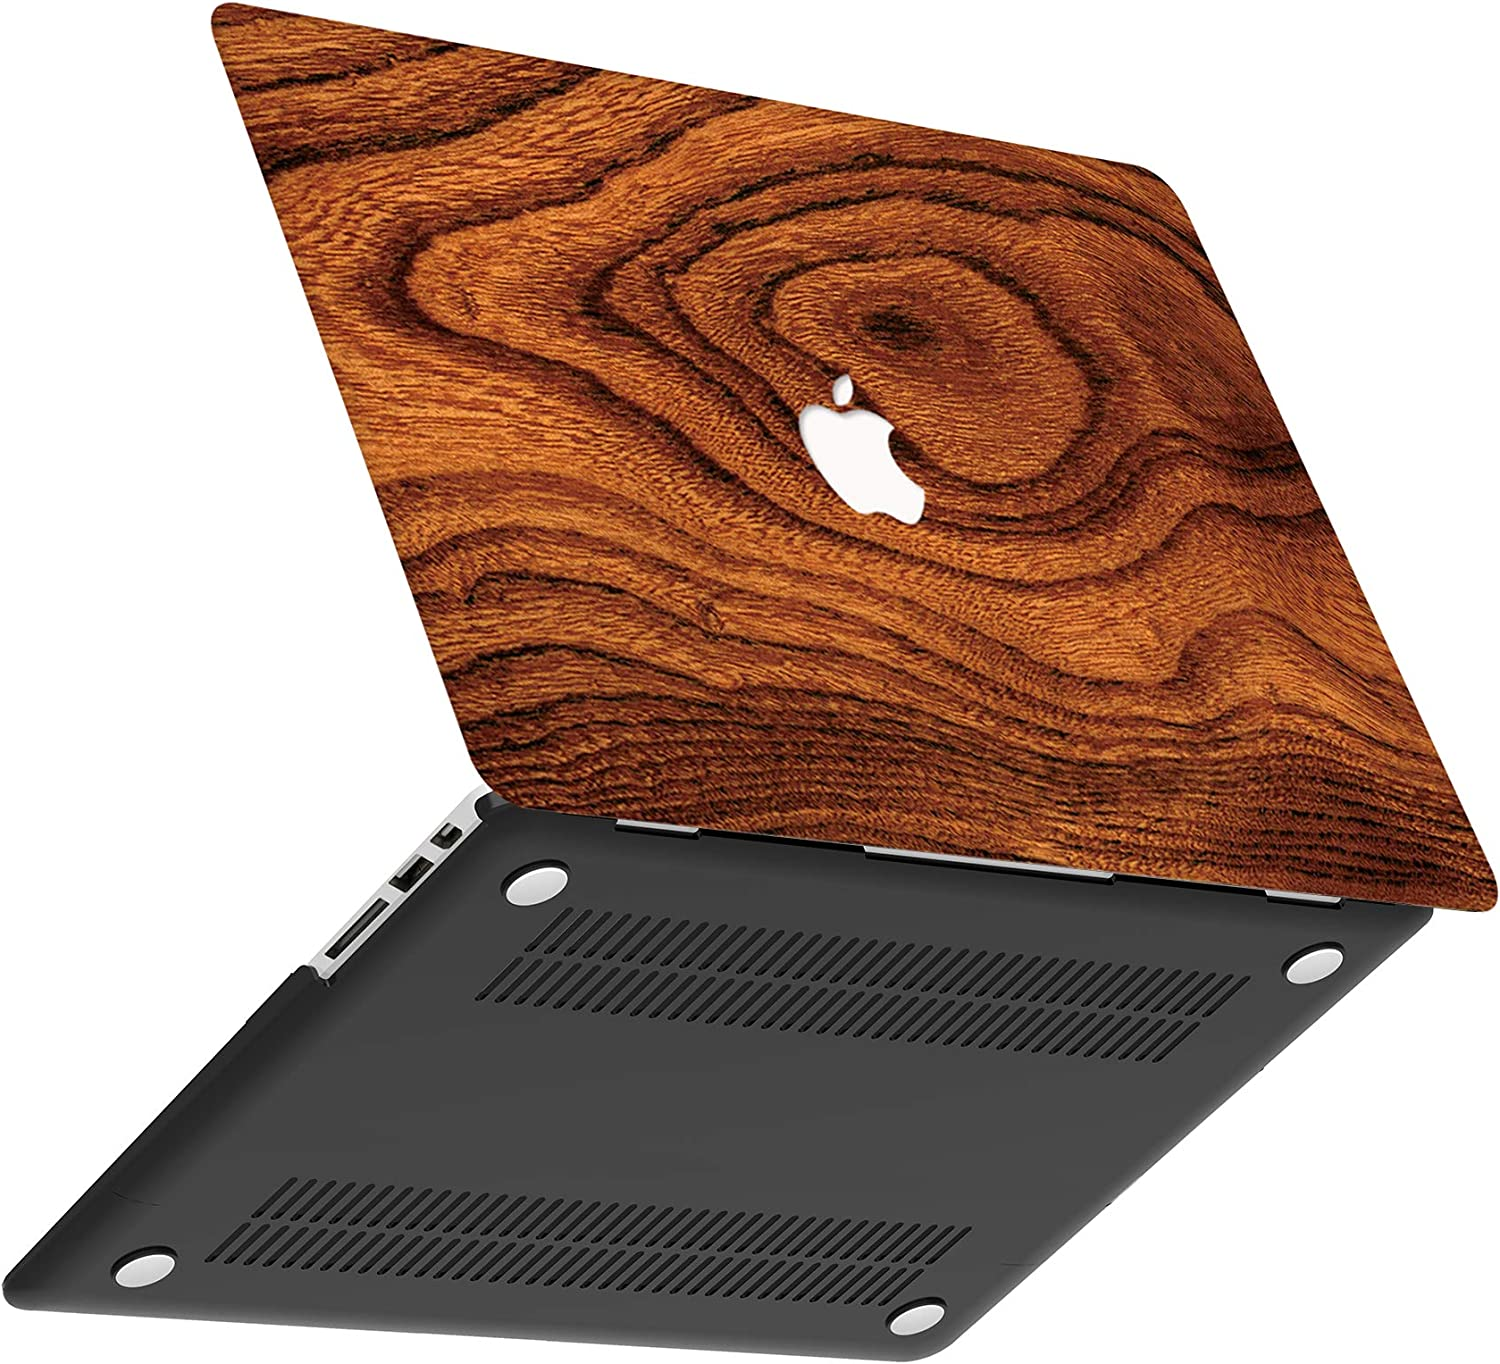 AOGGY MacBook Air 13 Inch Case 2018 Release A1932 Wood Grain 2 ,{Wood Grain Series}Ultra-Thin Smooth Rubber Coating Scratch-Resistant Protective Hard Case with Retina Display and Touch ID